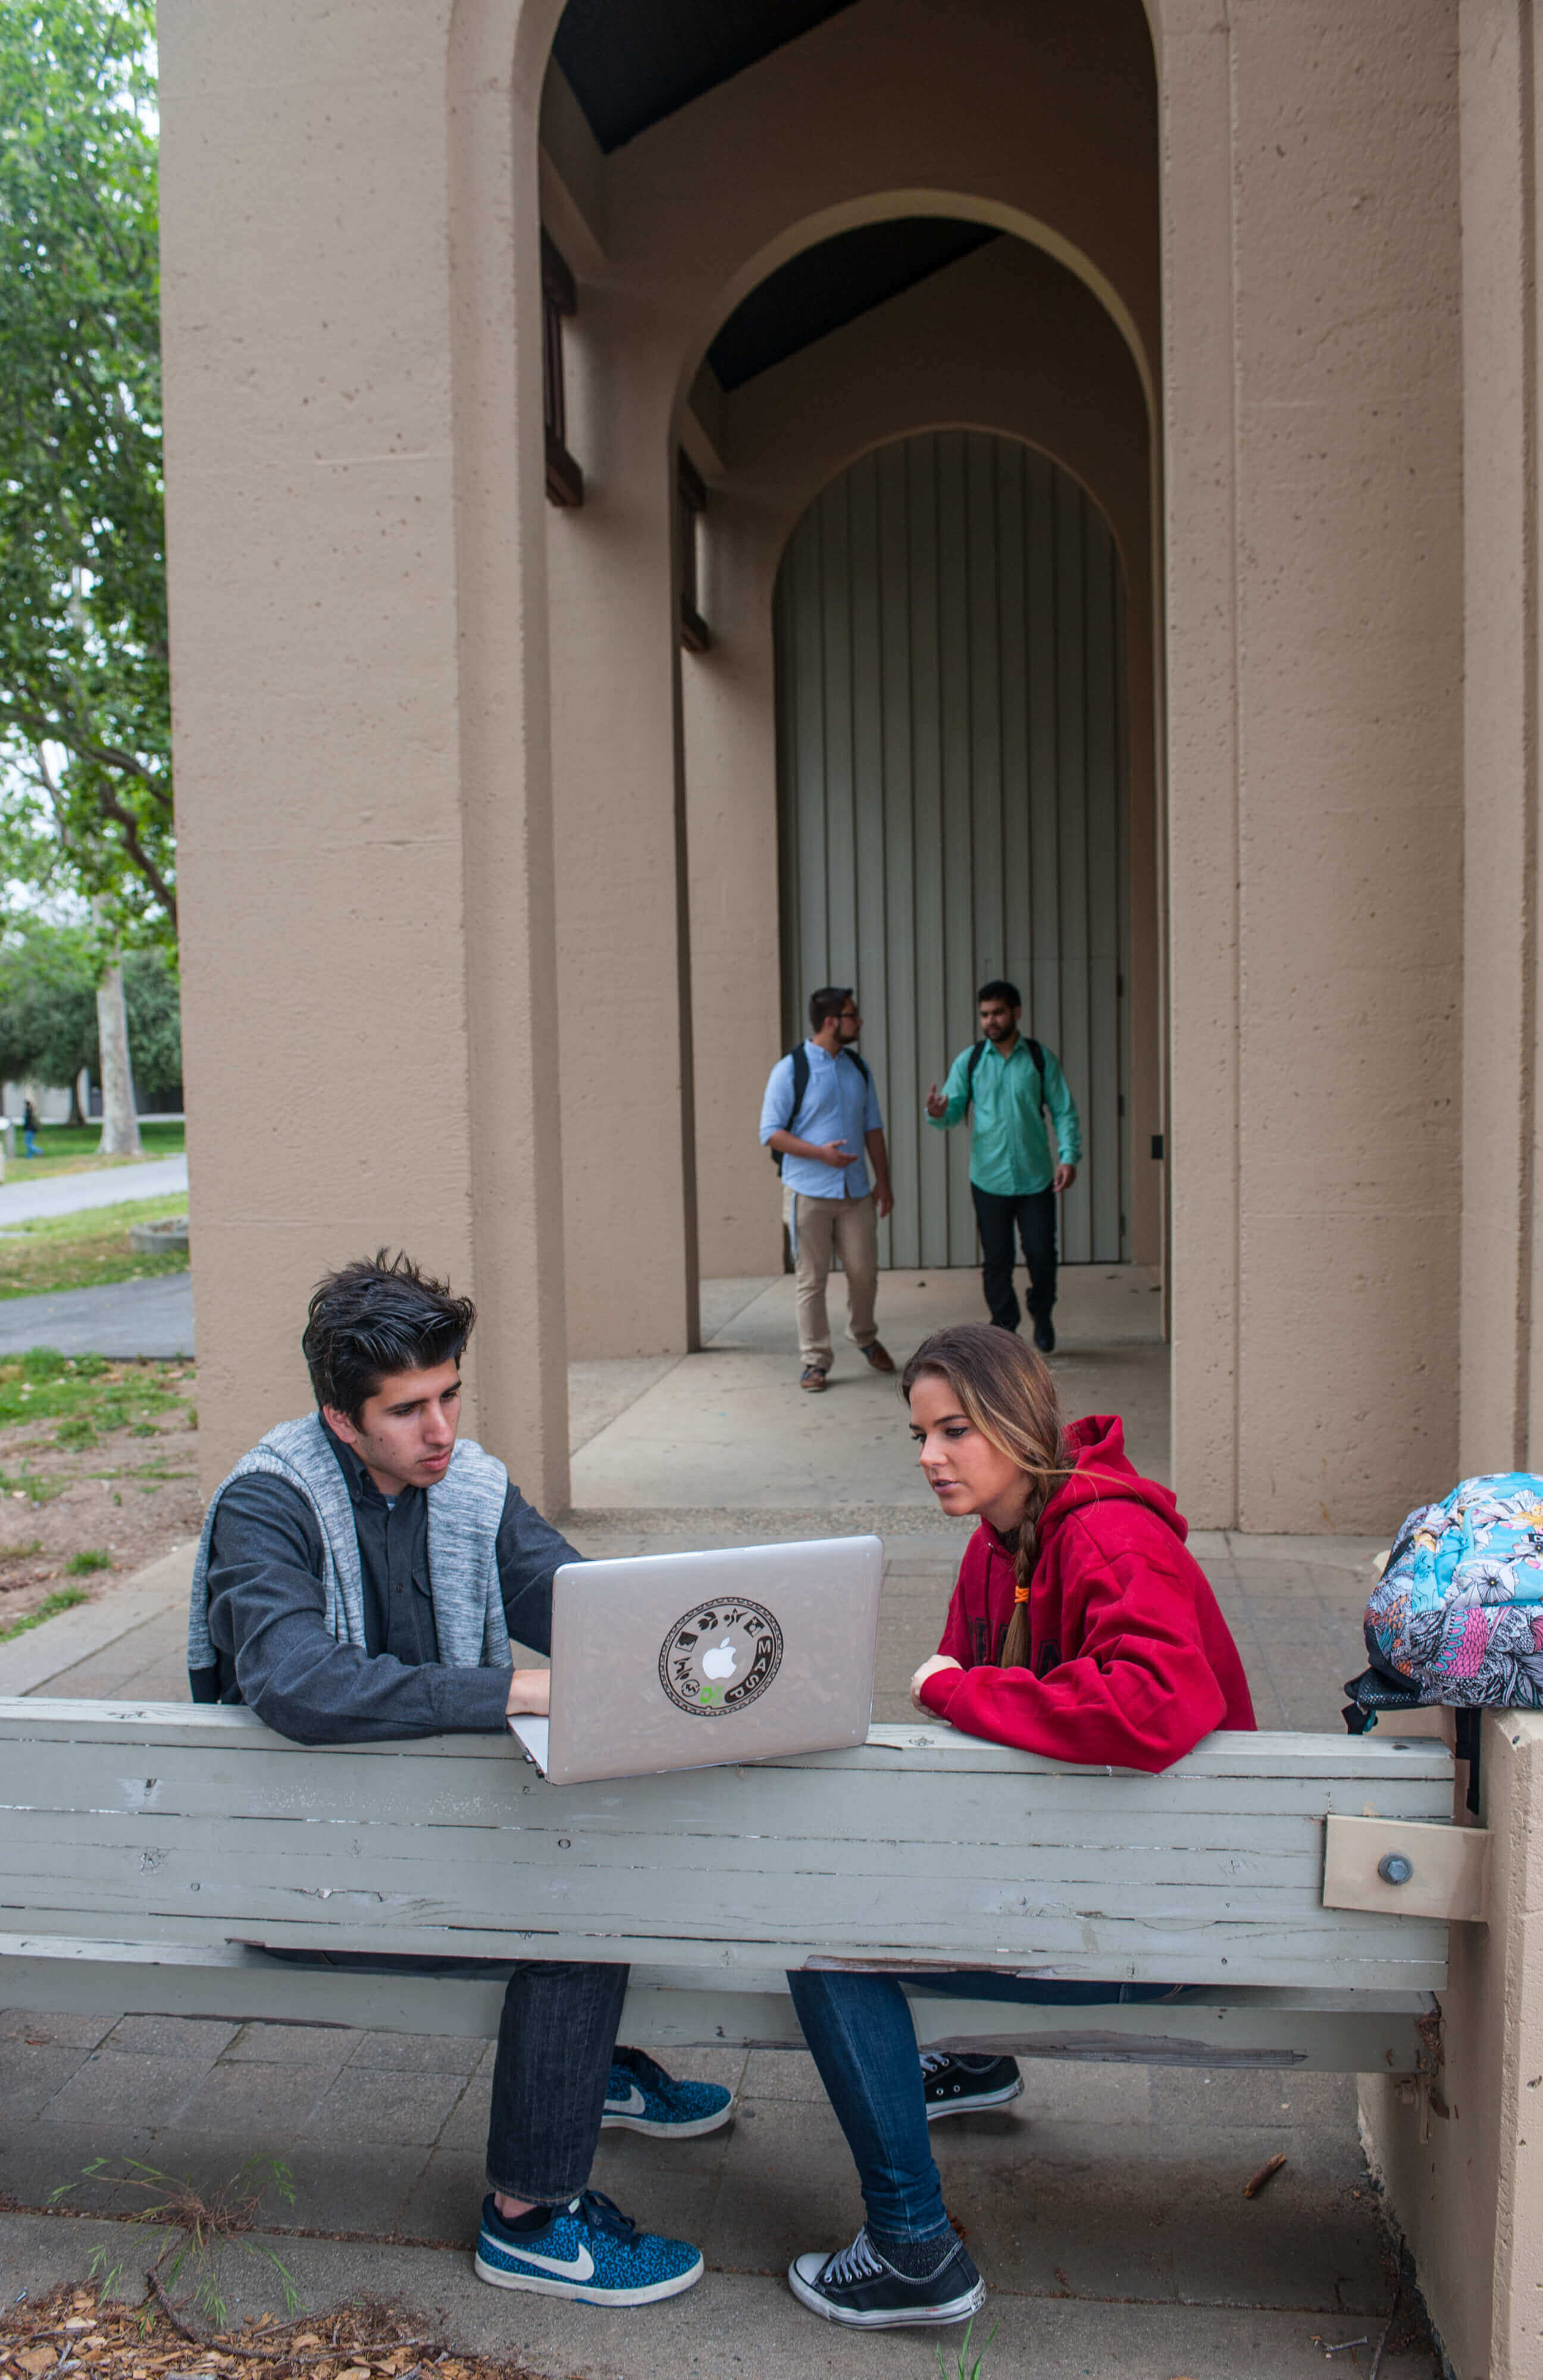 students at laptop